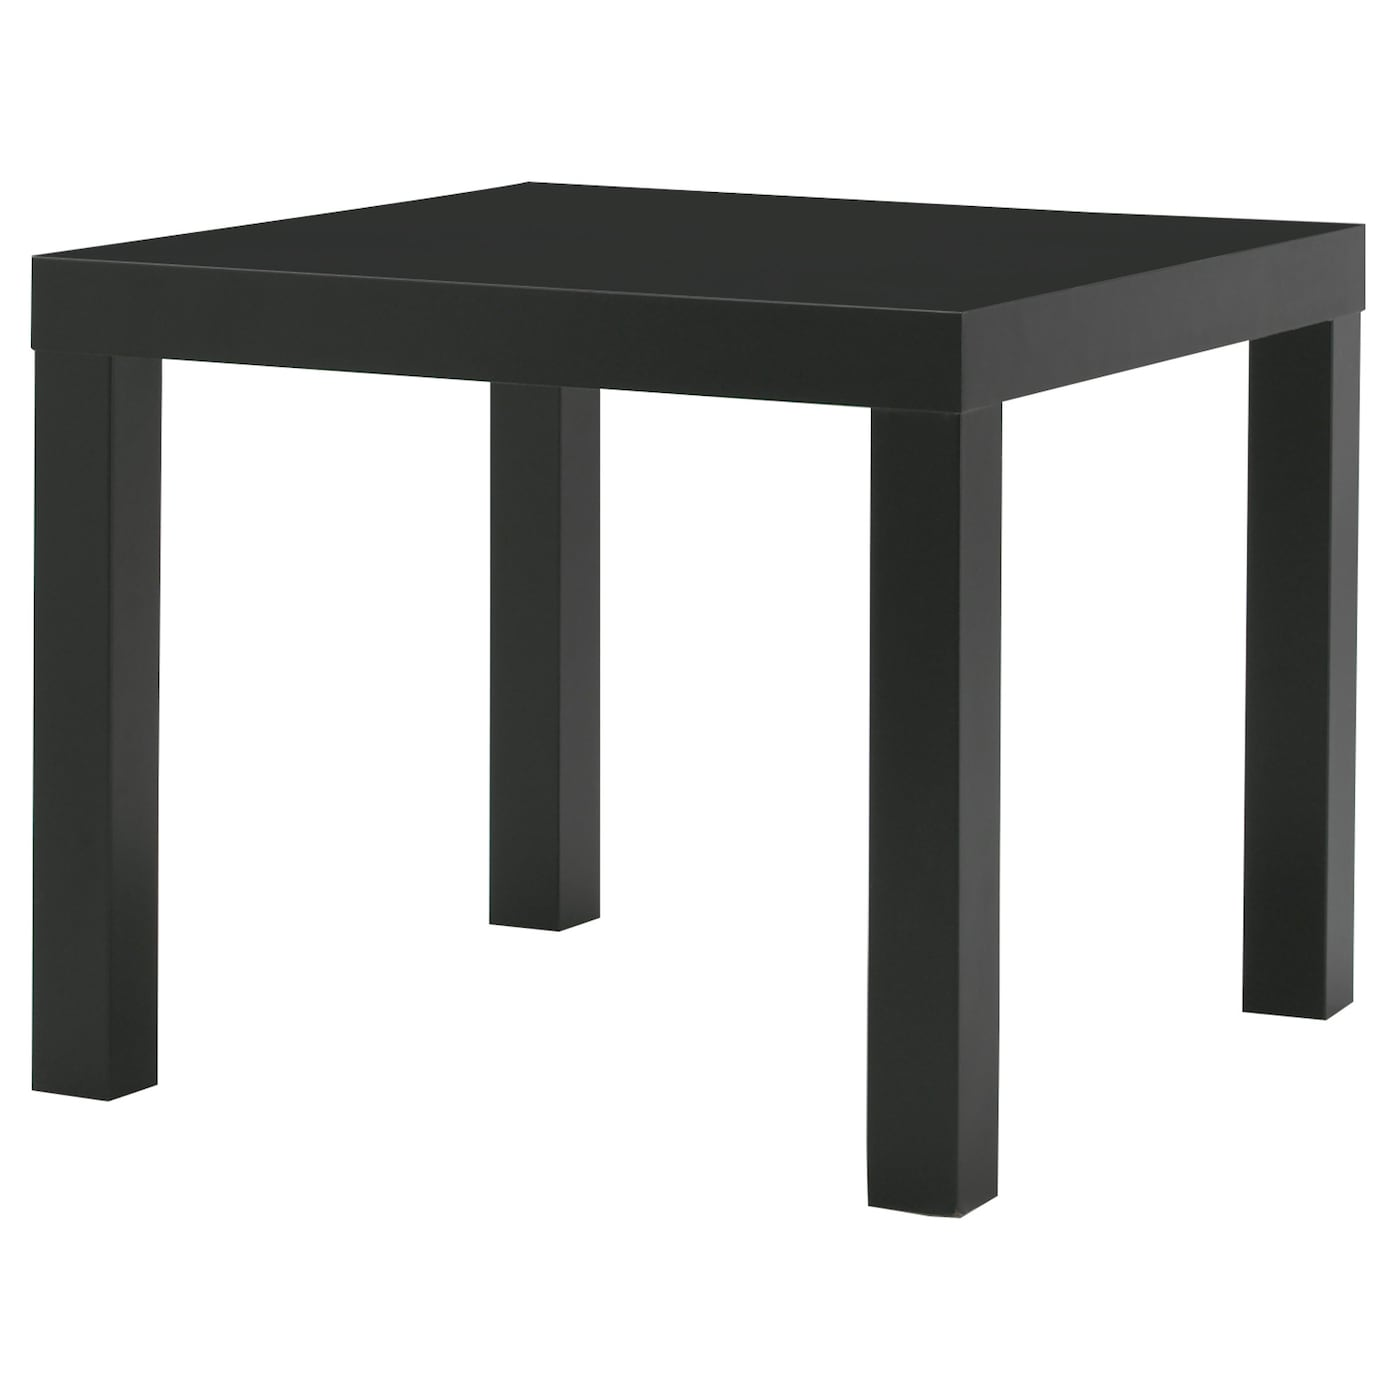 Lack side table black 55x55 cm ikea - Ikea table basse lack ...